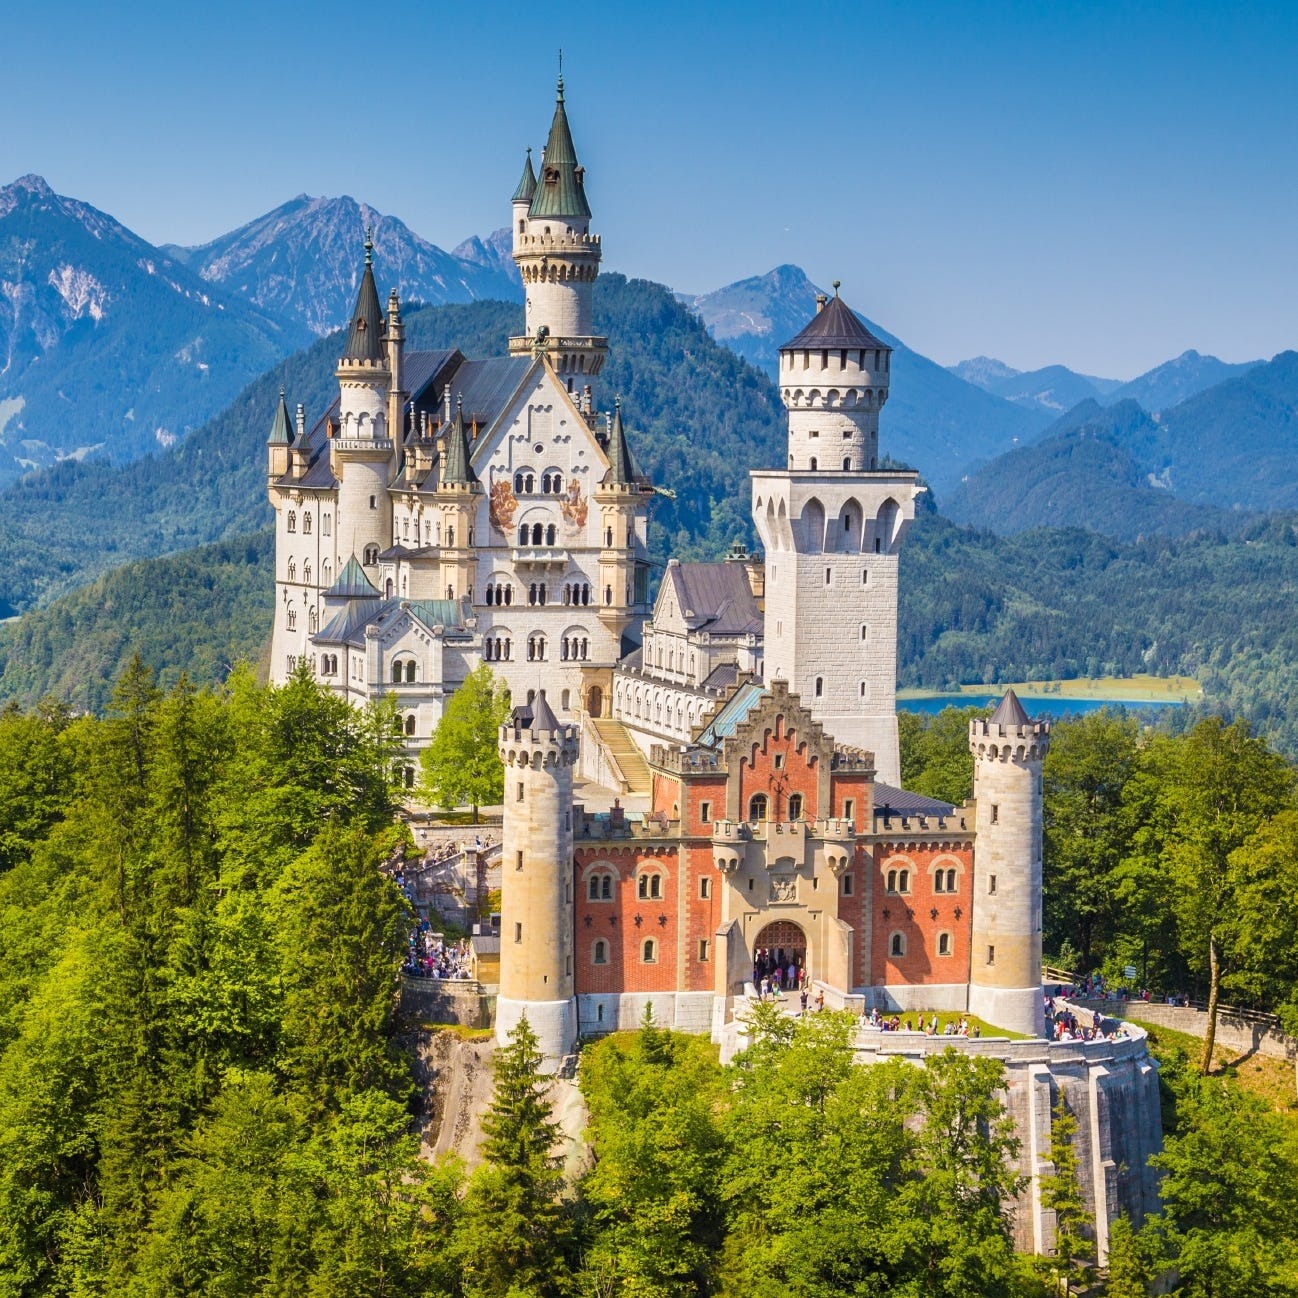 No. 2 on the list of top 10 countries to visit in 2019 is Germany. This year's Bauhaus Centennial is a good reason to revisit vibrant Germany with its mesmerizing mix of tradition, urban edge and bewitching landscapes.